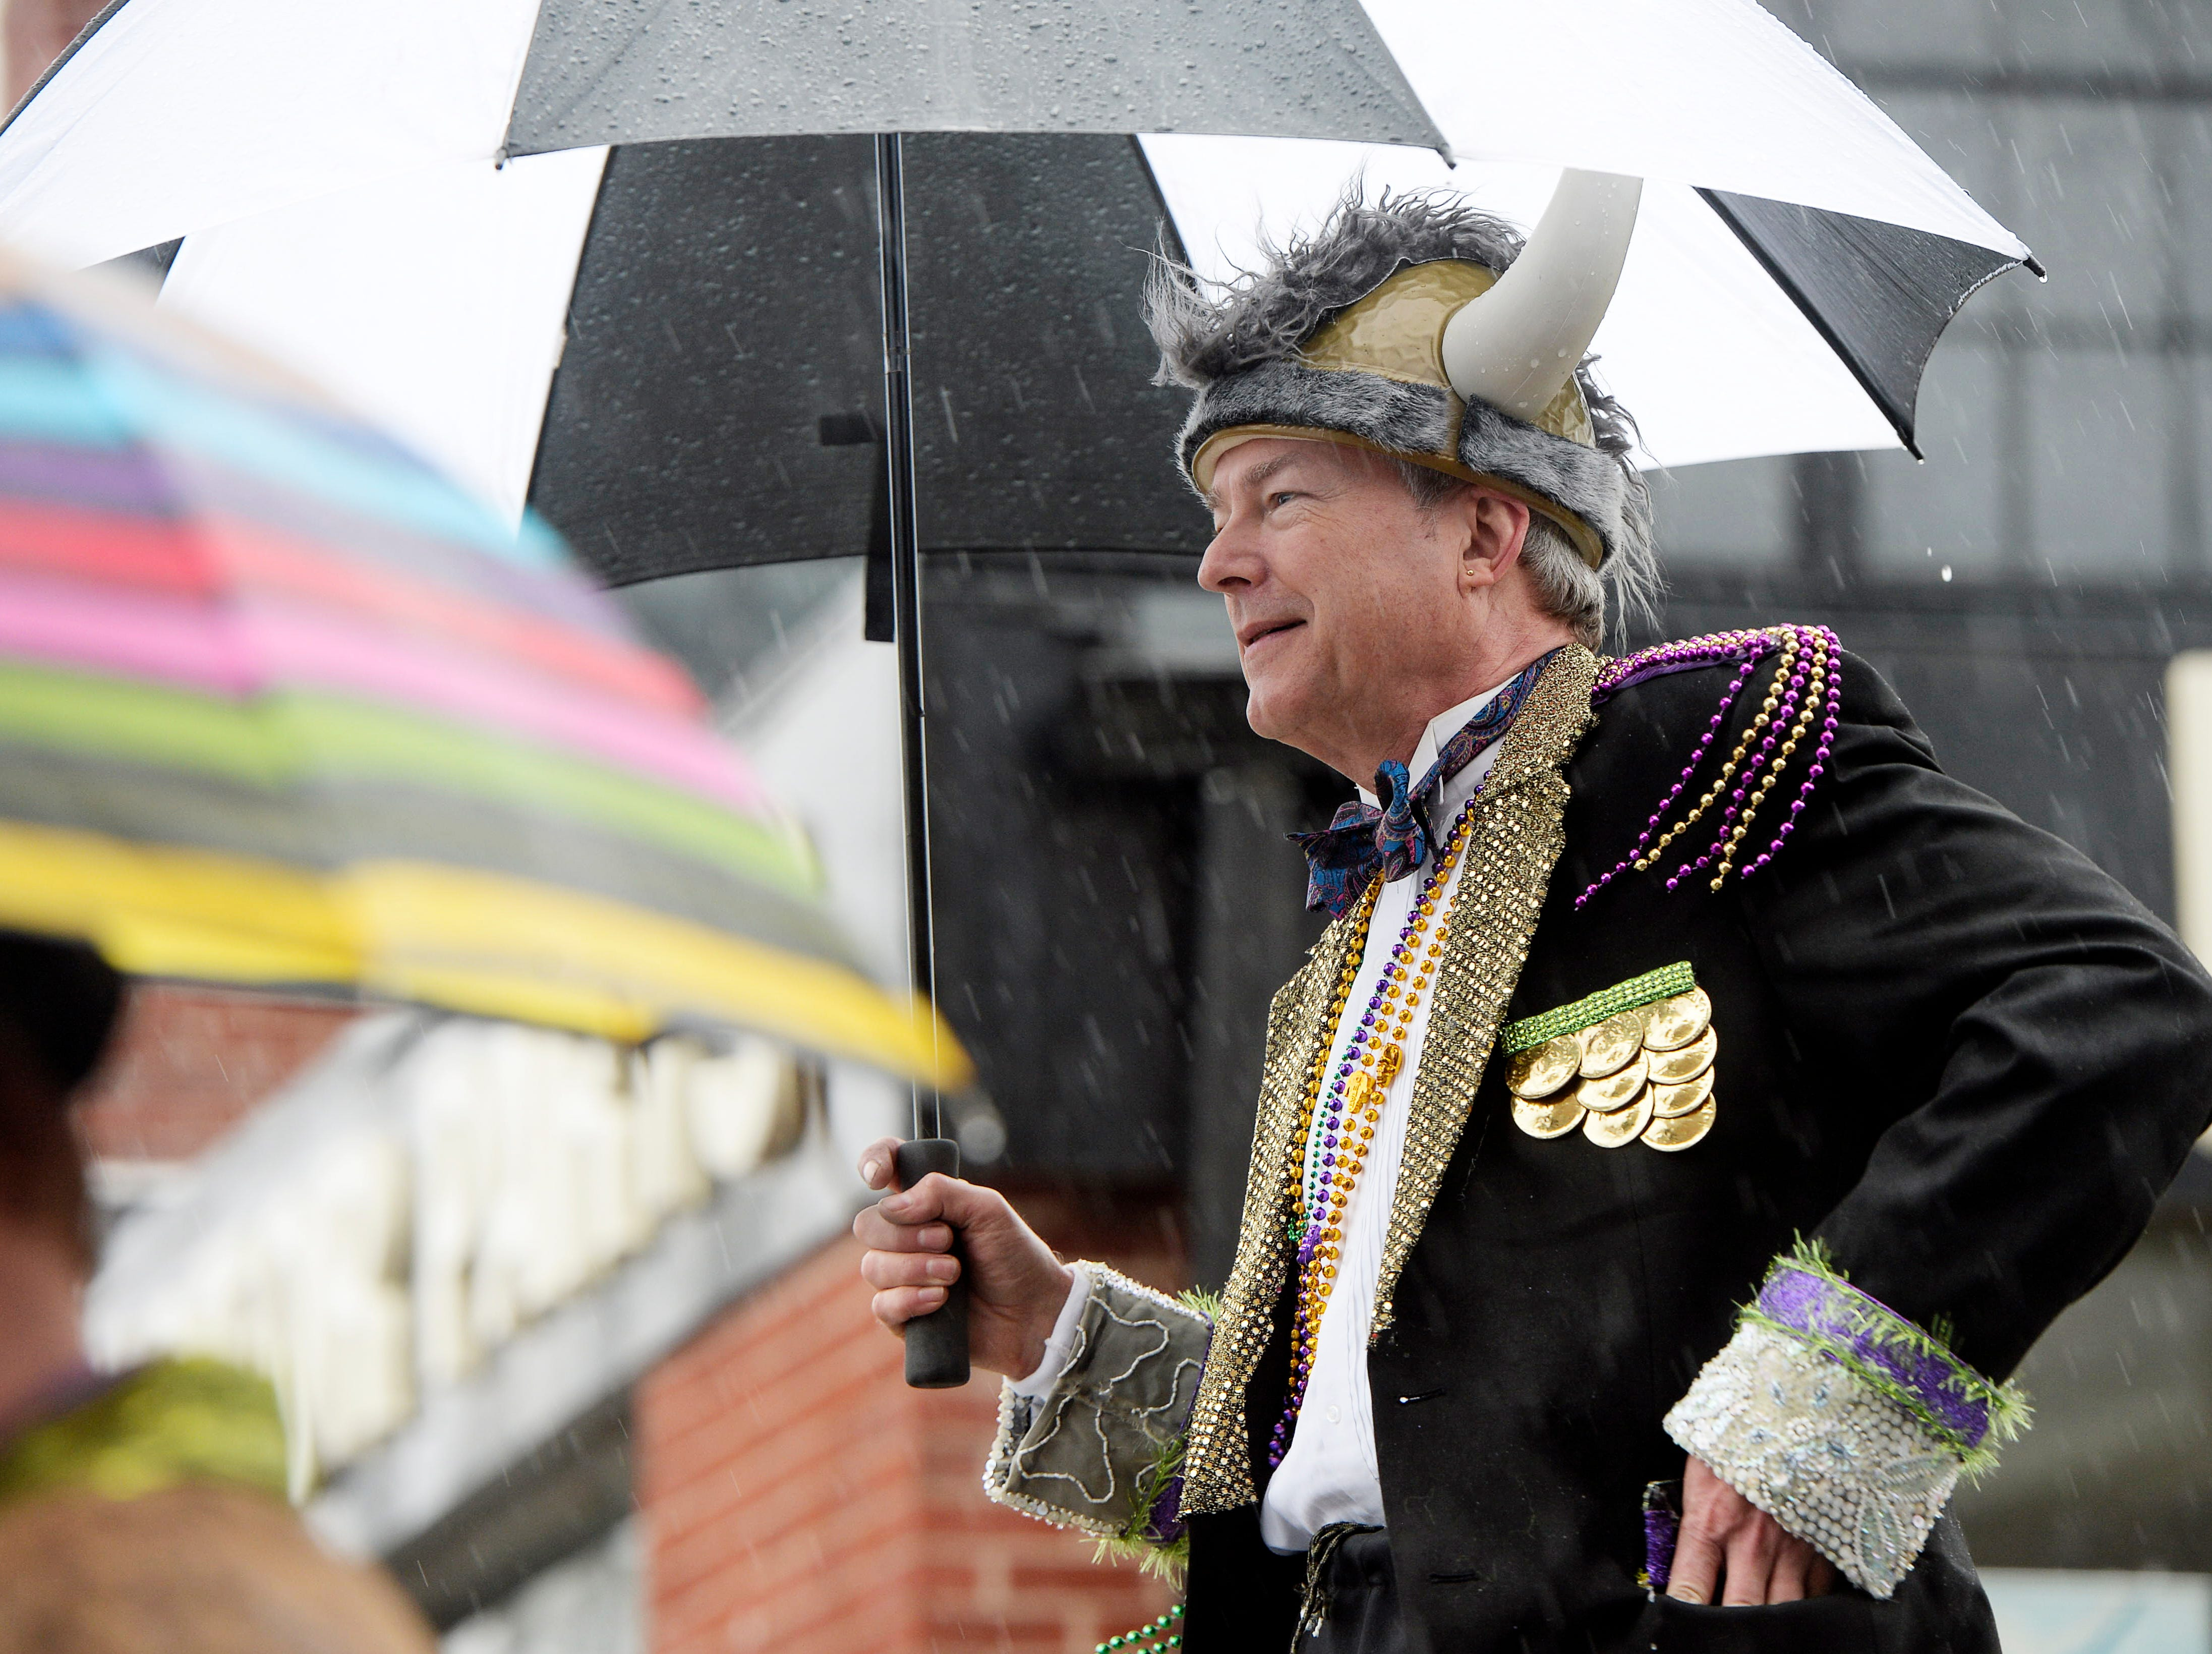 The 12th annual Mardi Gras Parade traveled through the South Slope despite rain March 3, 2019 in Asheville. The theme was Wild! Wild! Asheville!